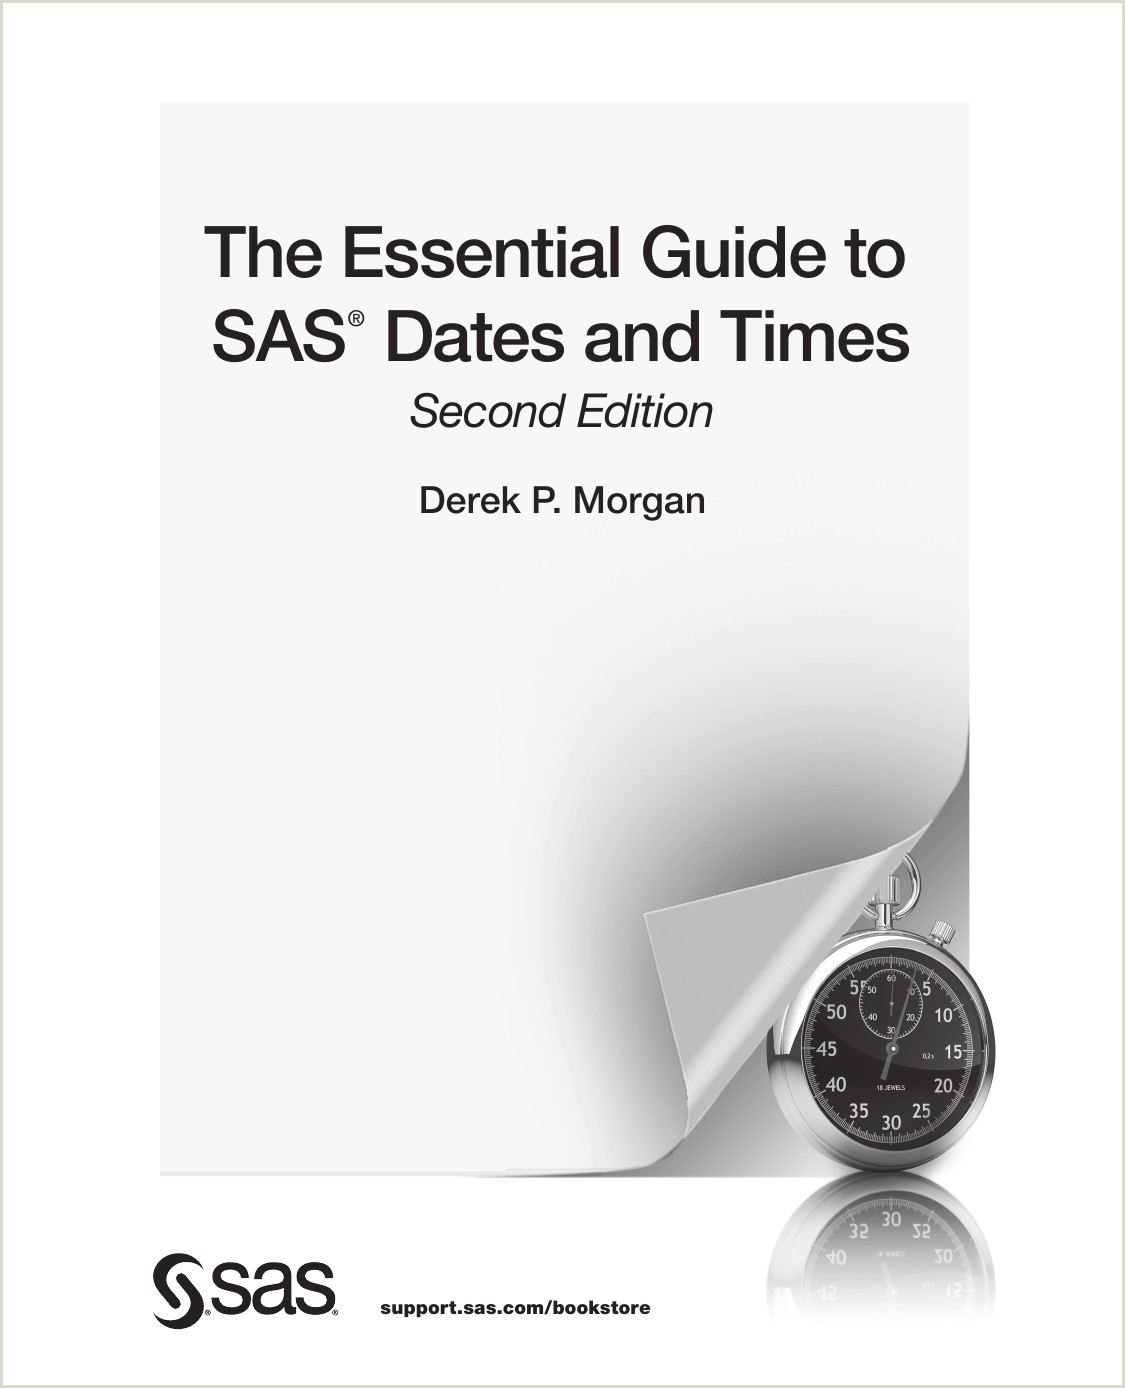 The Essential Guide to SAS Dates and Times Second Edition